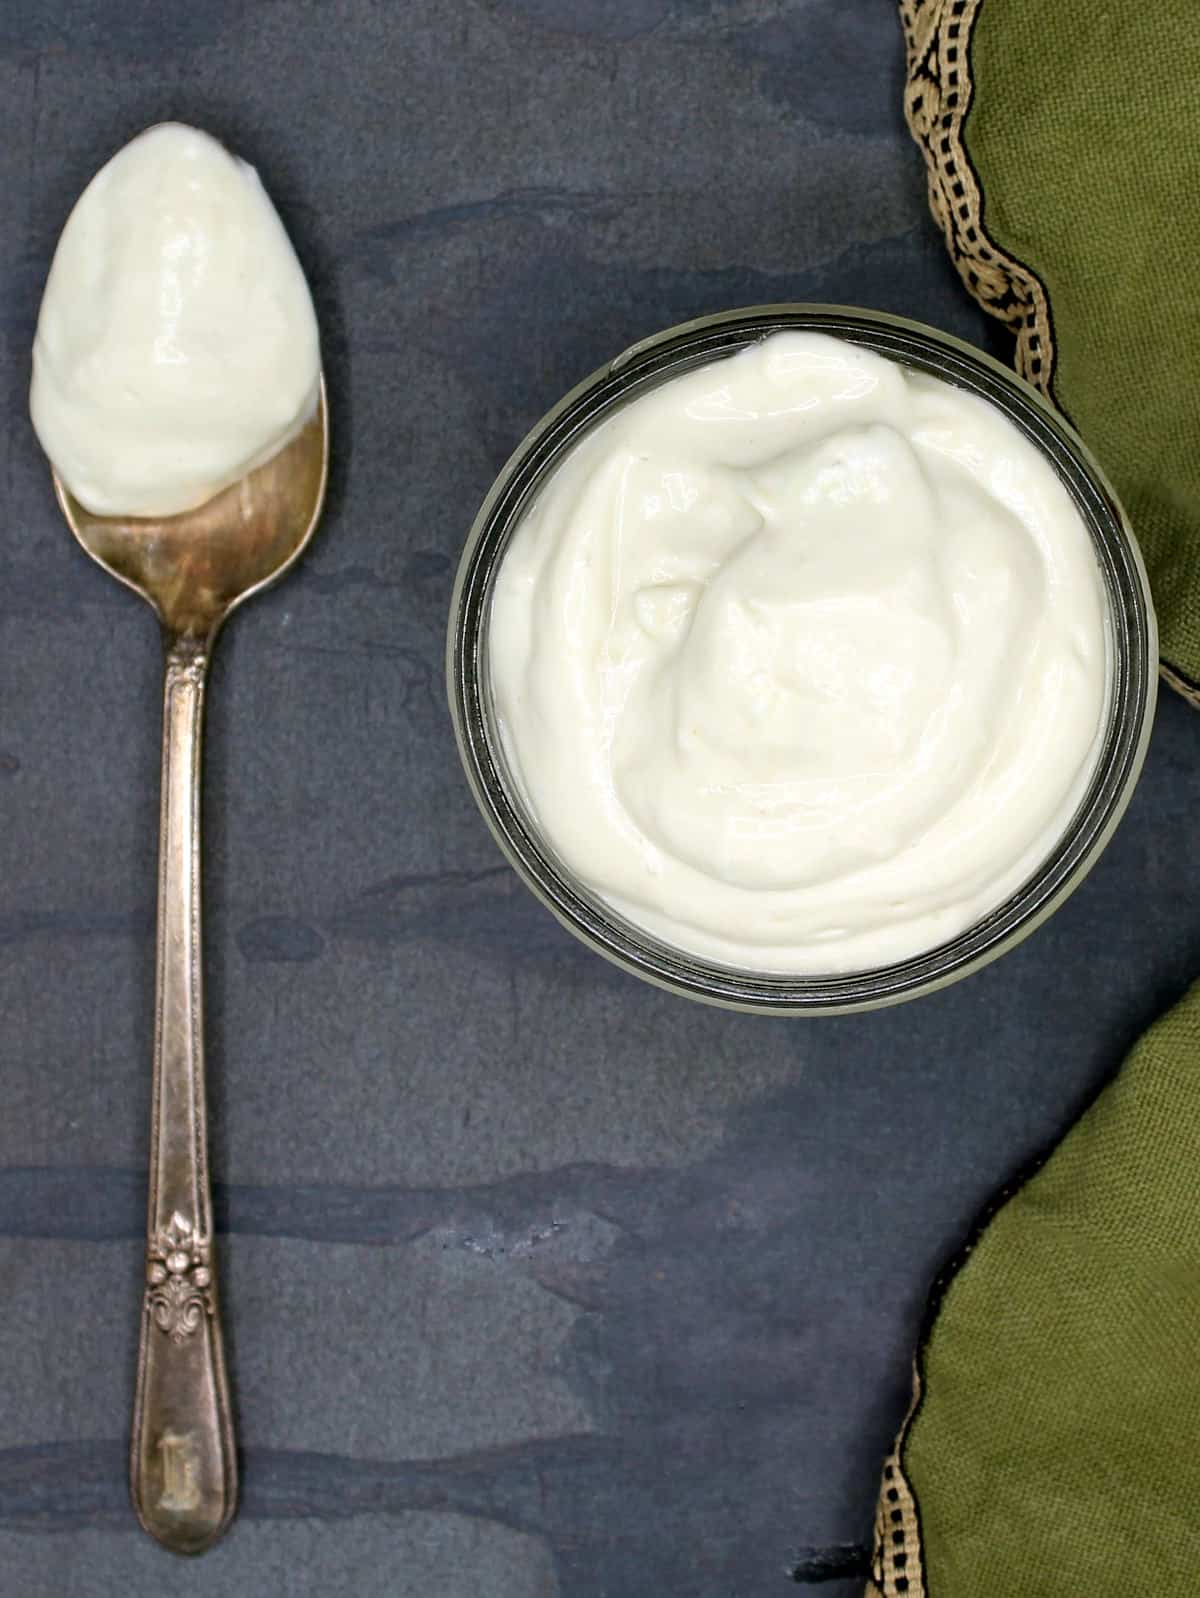 Overhead photo of creamy vegan mayo in glass jar with a silver spoon with mayo on the side and a green napkin.